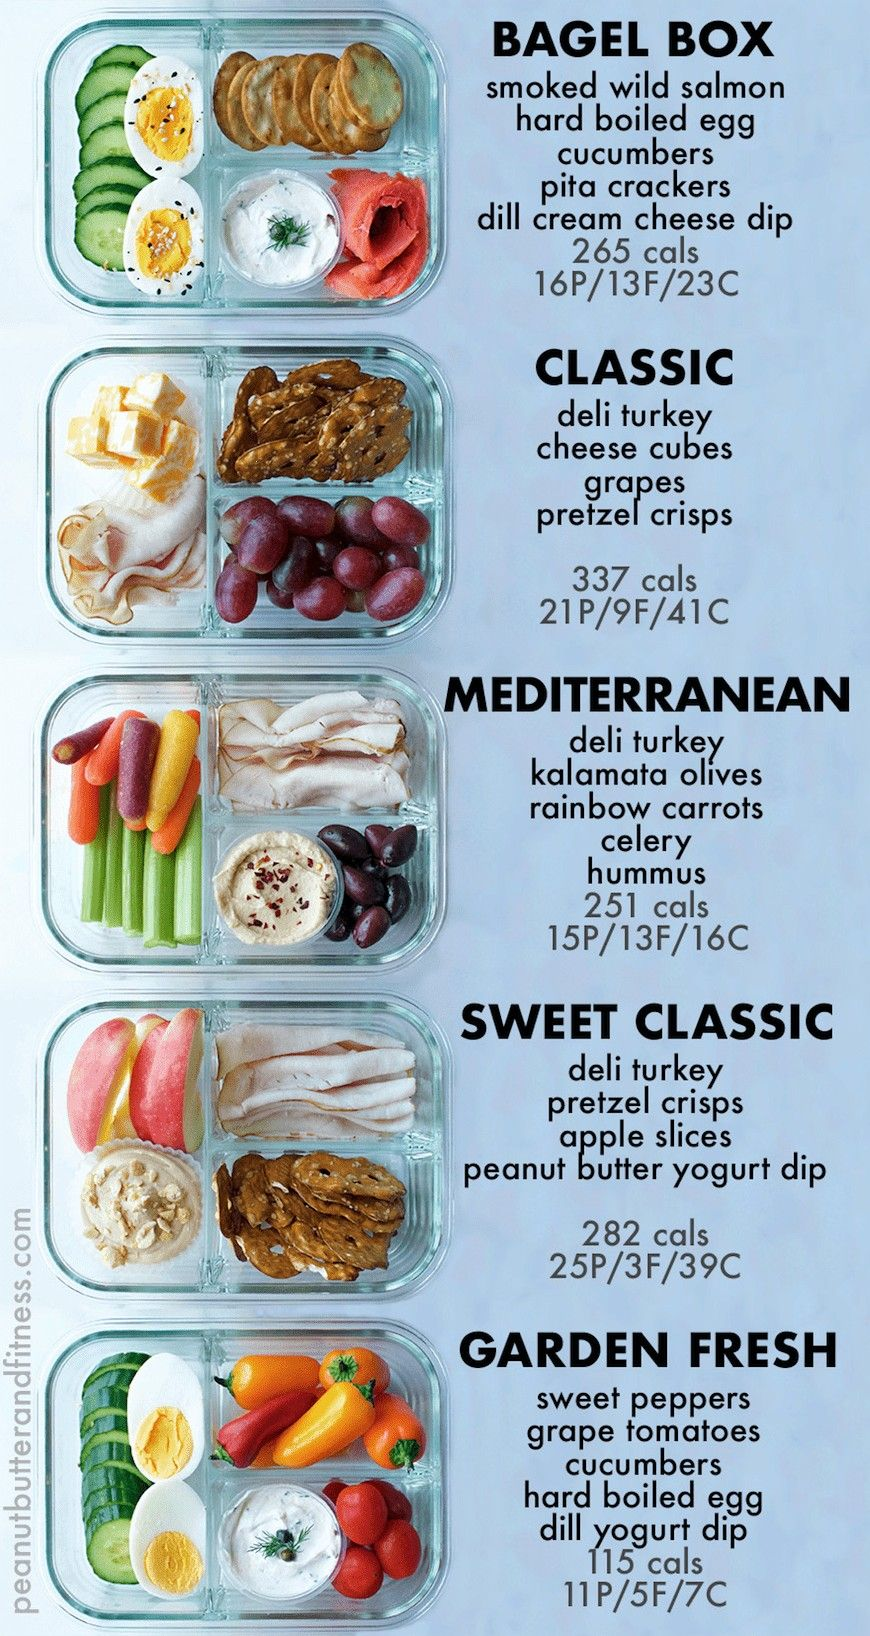 #information #scannable #delicious #nutrition #barcodes #prepping #includes #fitness #snacks #bento...